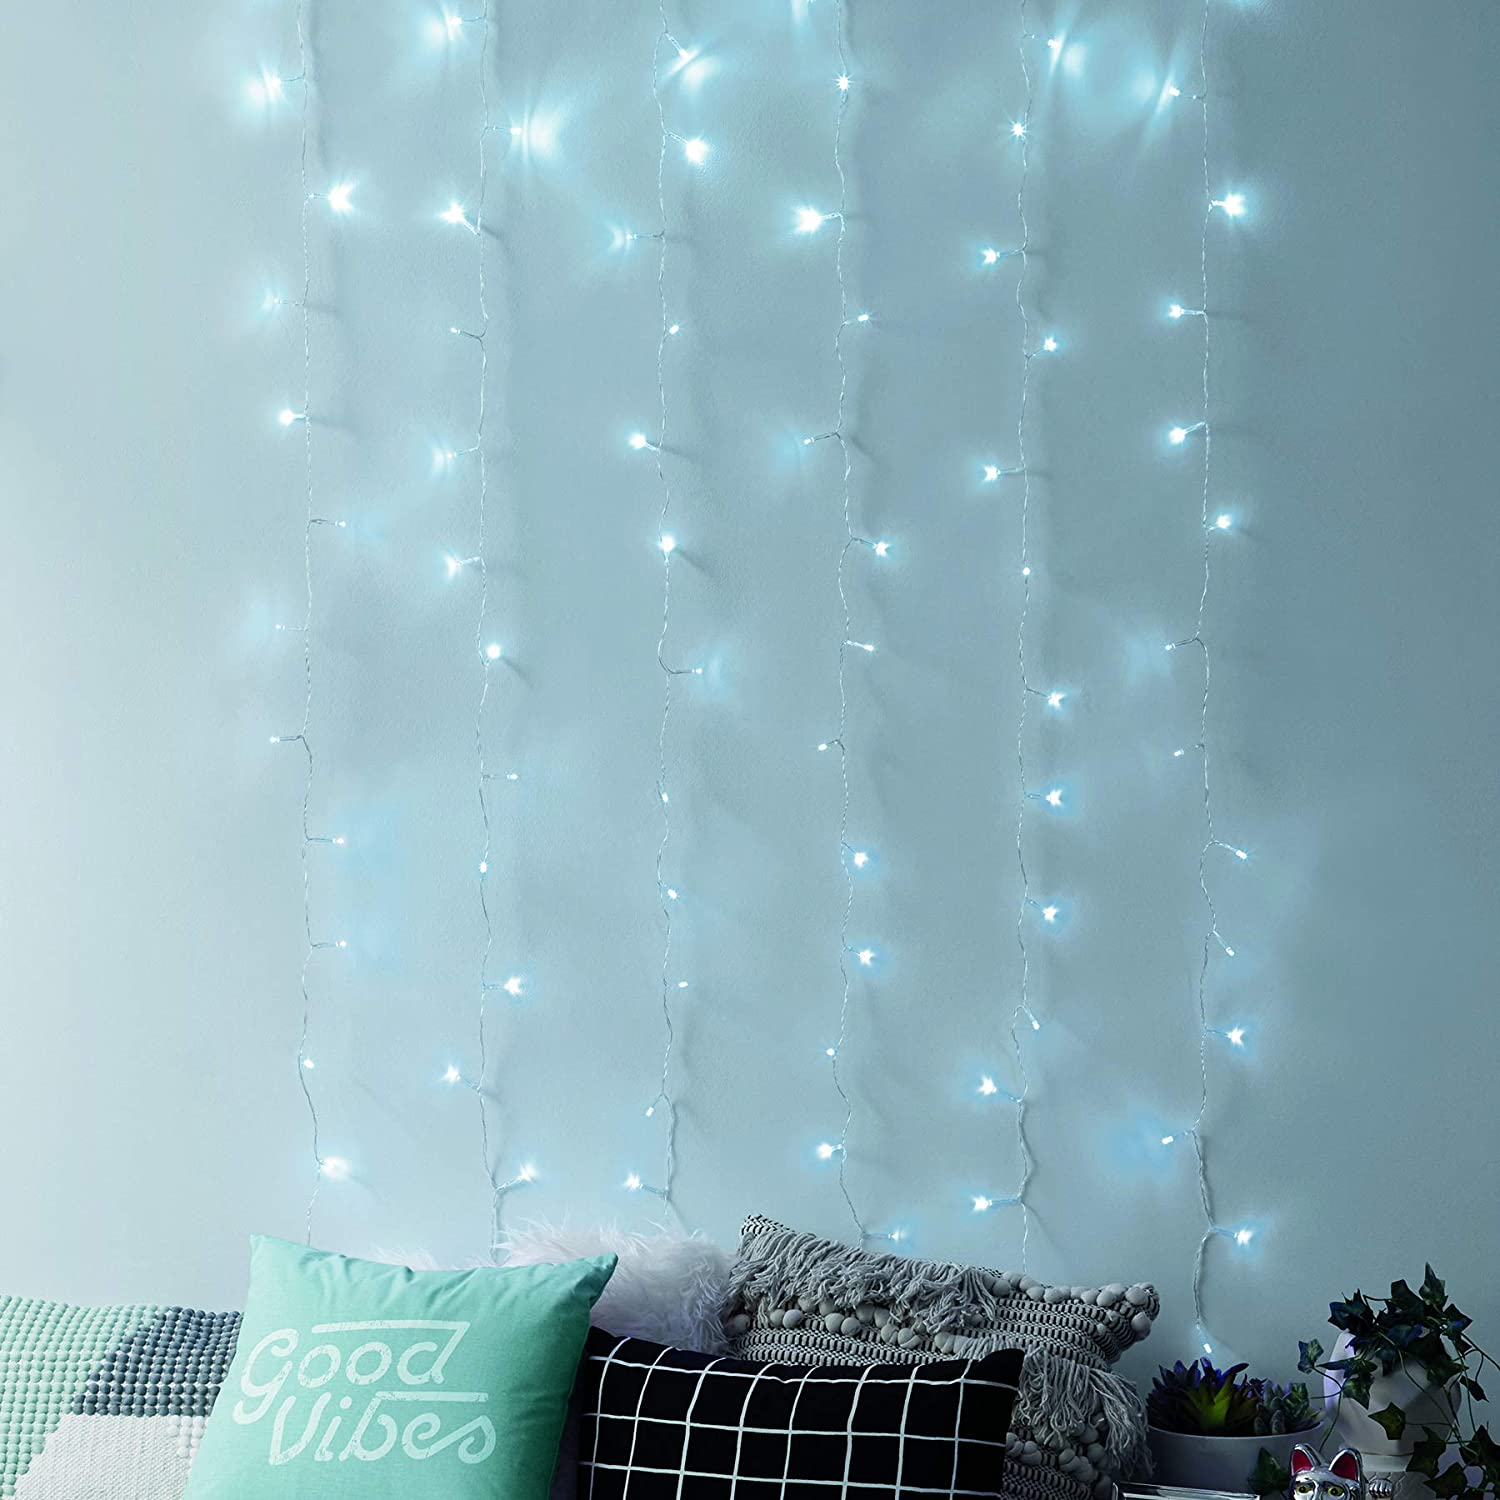 Merkury Innovations Curtain Lights, Cascading Battery-Operated LED Lighted Backdrop Curtain for Bedroom, Wedding, Decoration, or Christmas (Cool White)